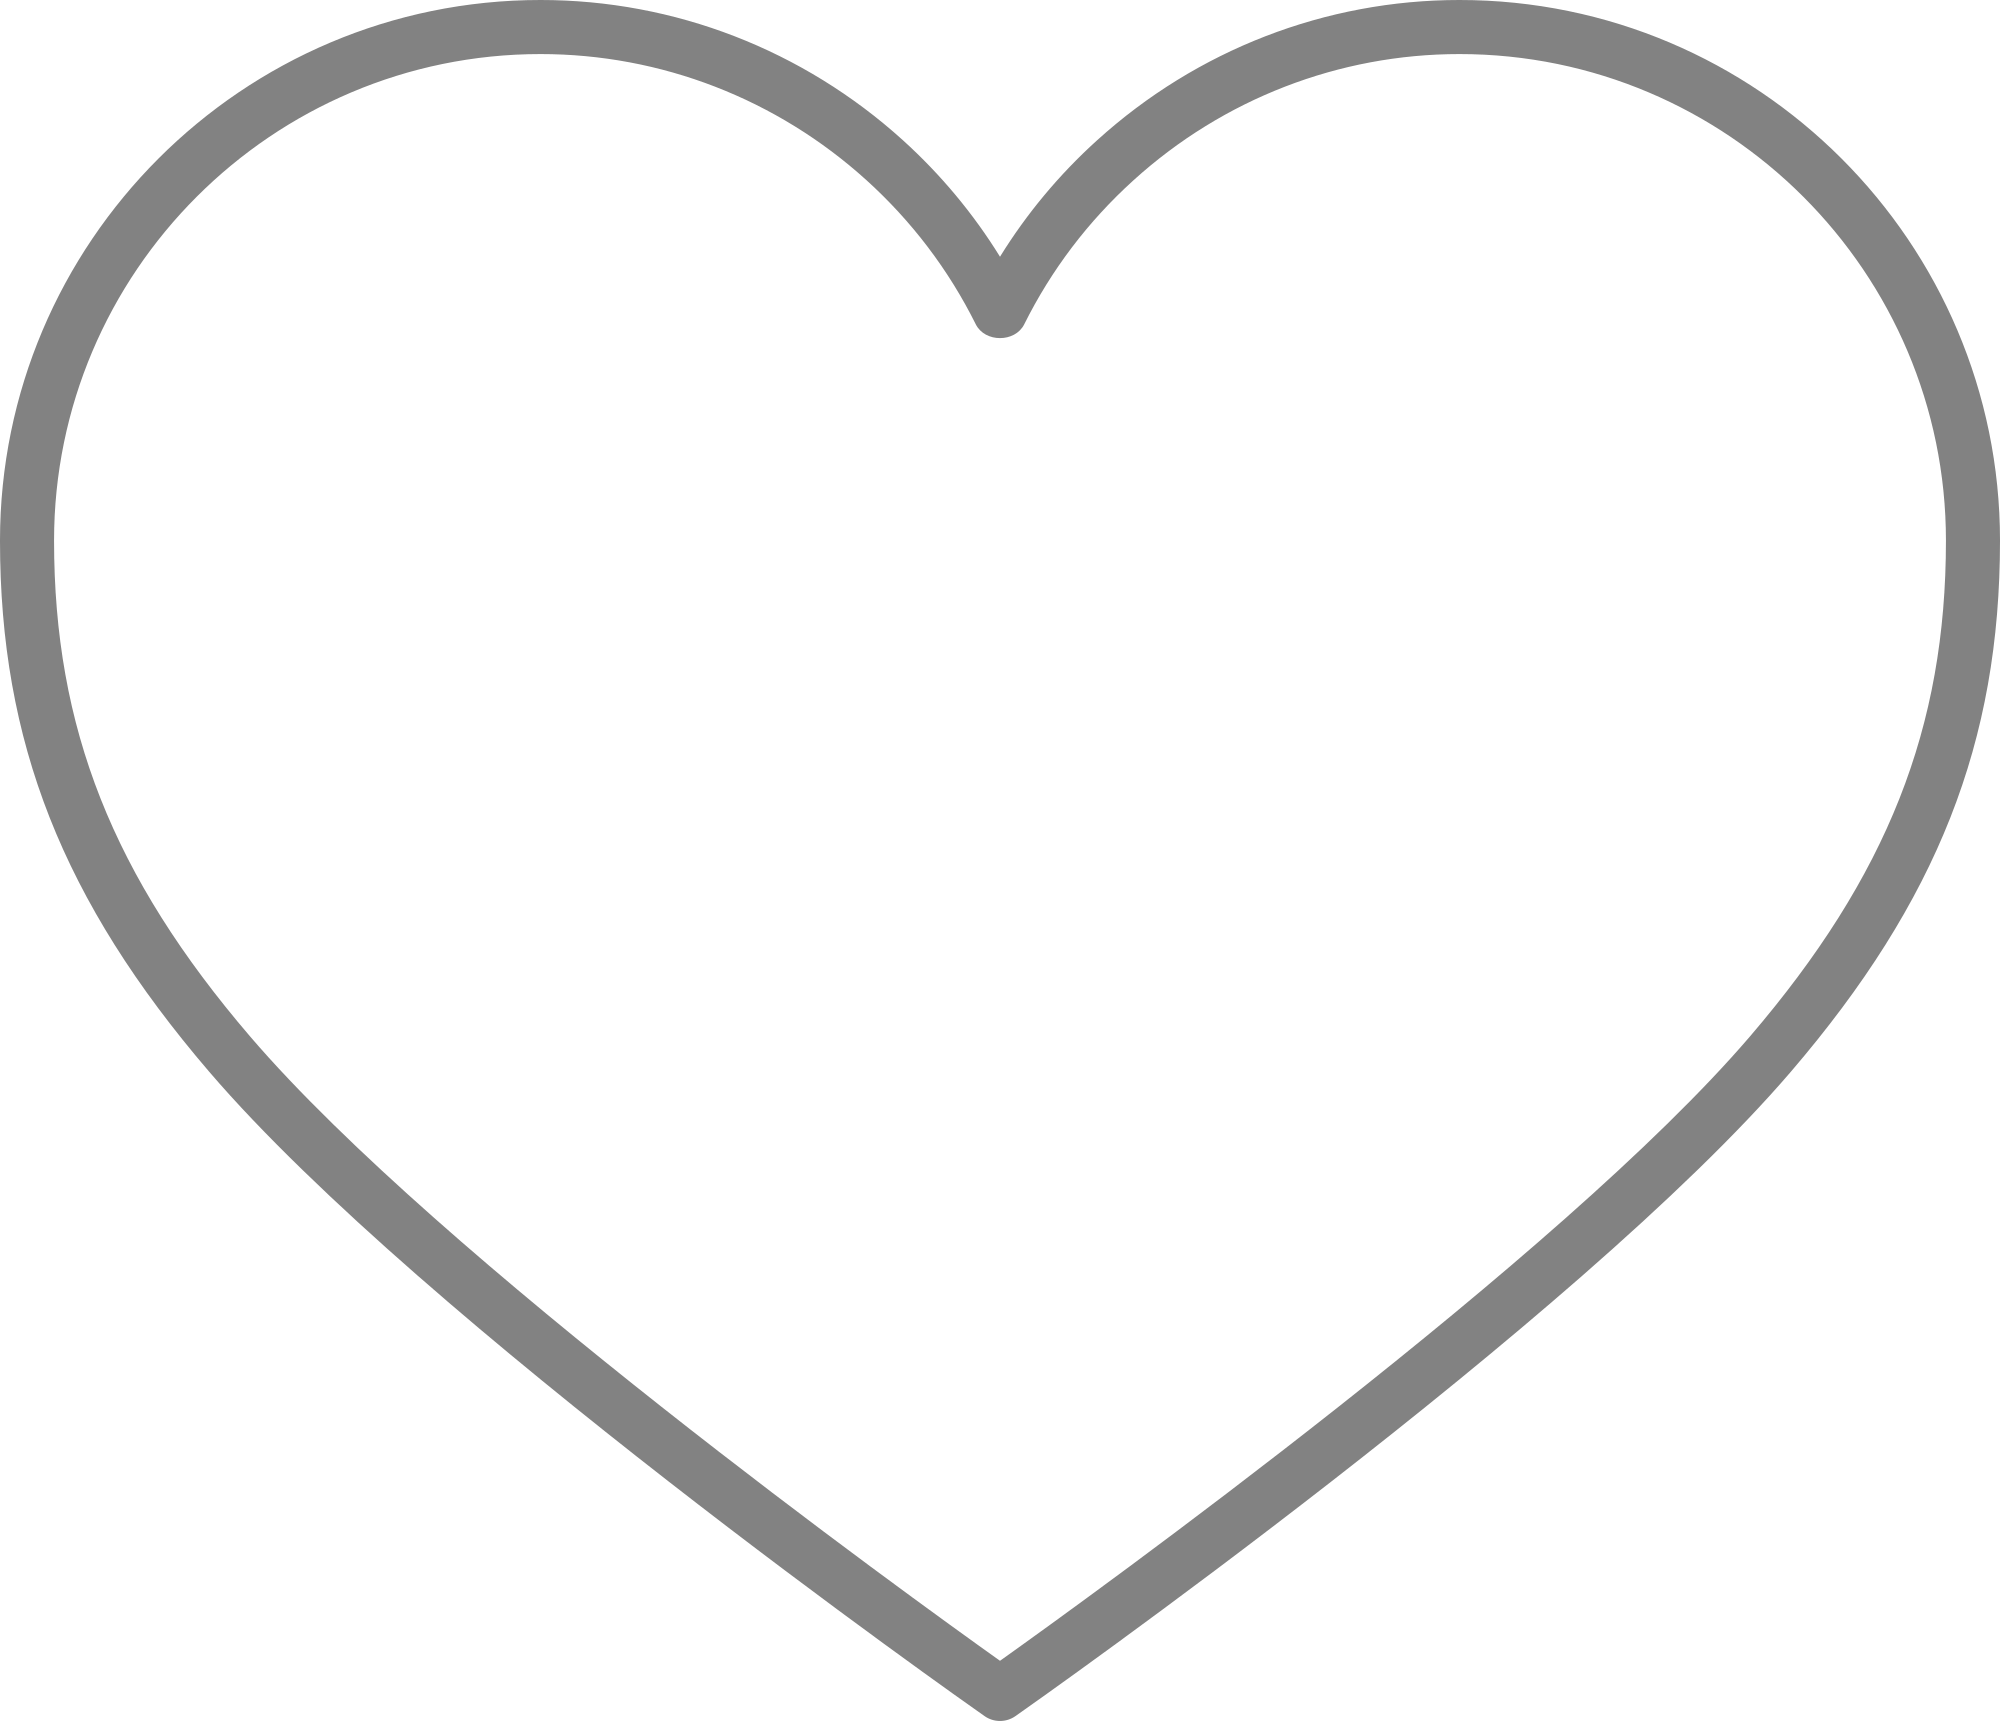 Heart line png. File style icons svg